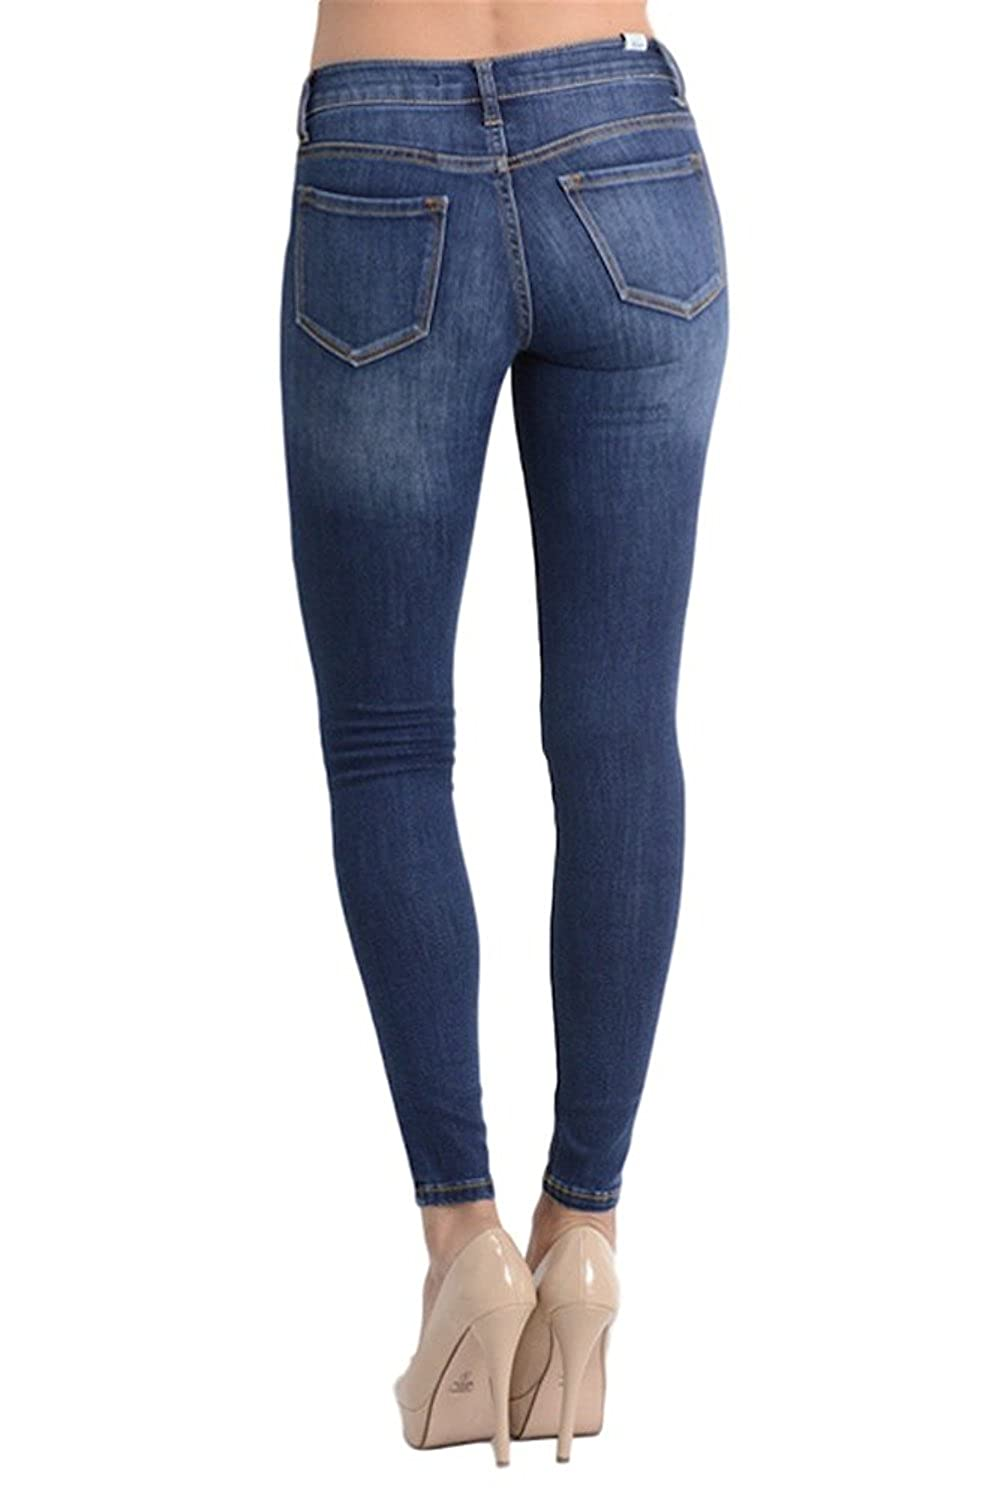 Kan Can Womens Mid Rise Super Skinny Jeans - Basic - KC7092